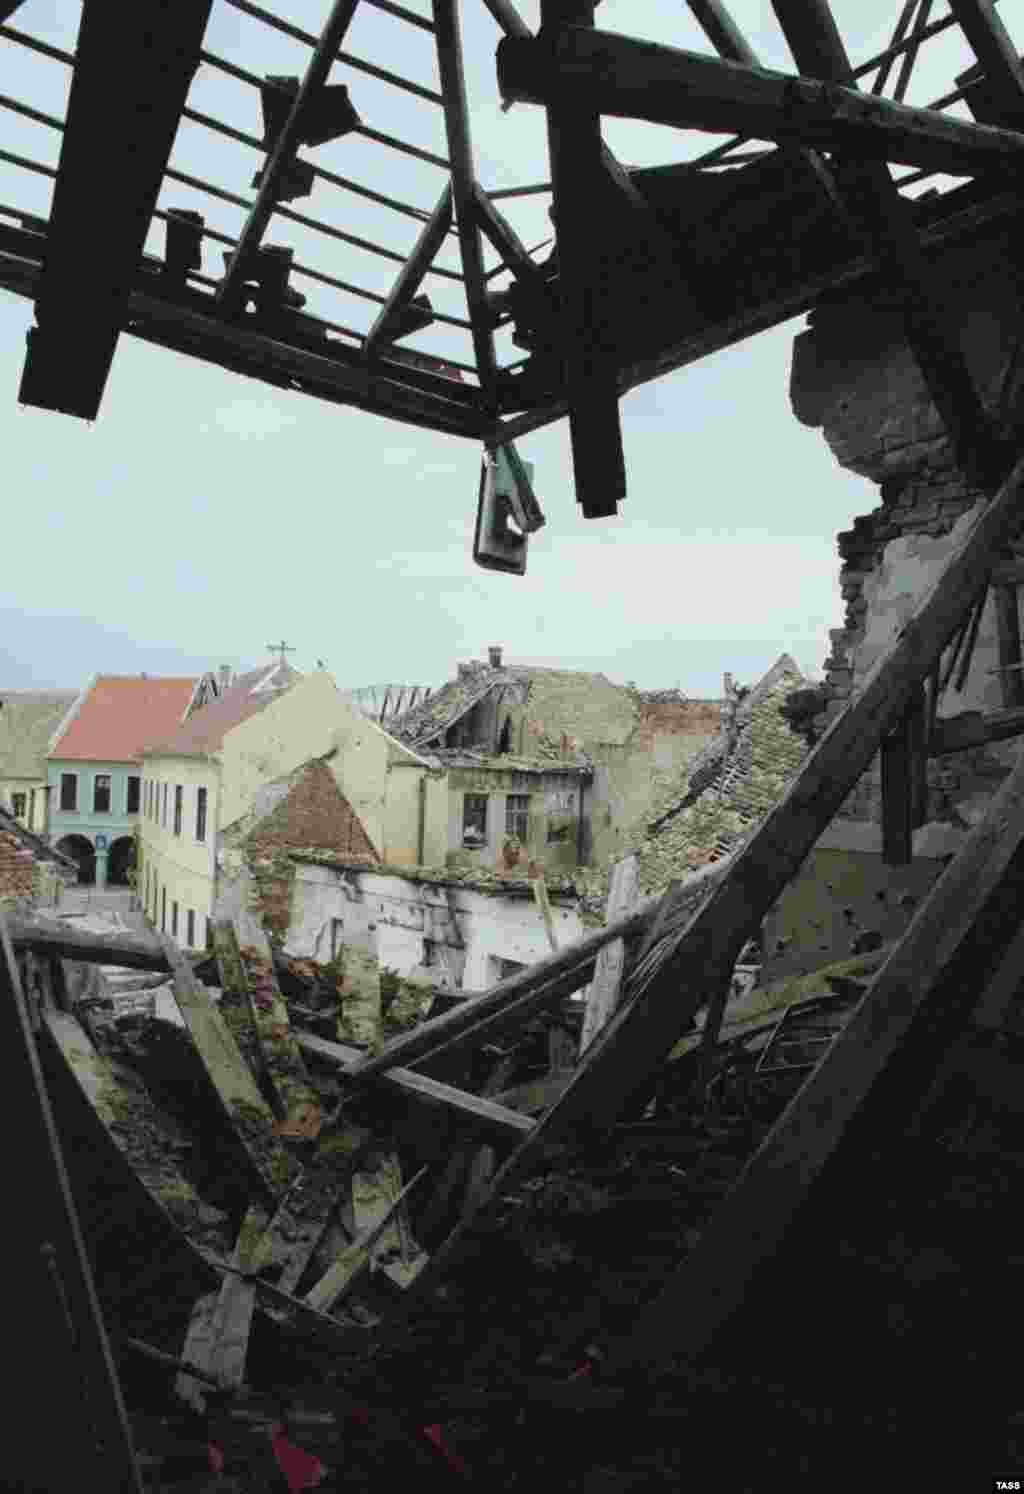 Vukovar after repeated shelling. May 1, 1993.